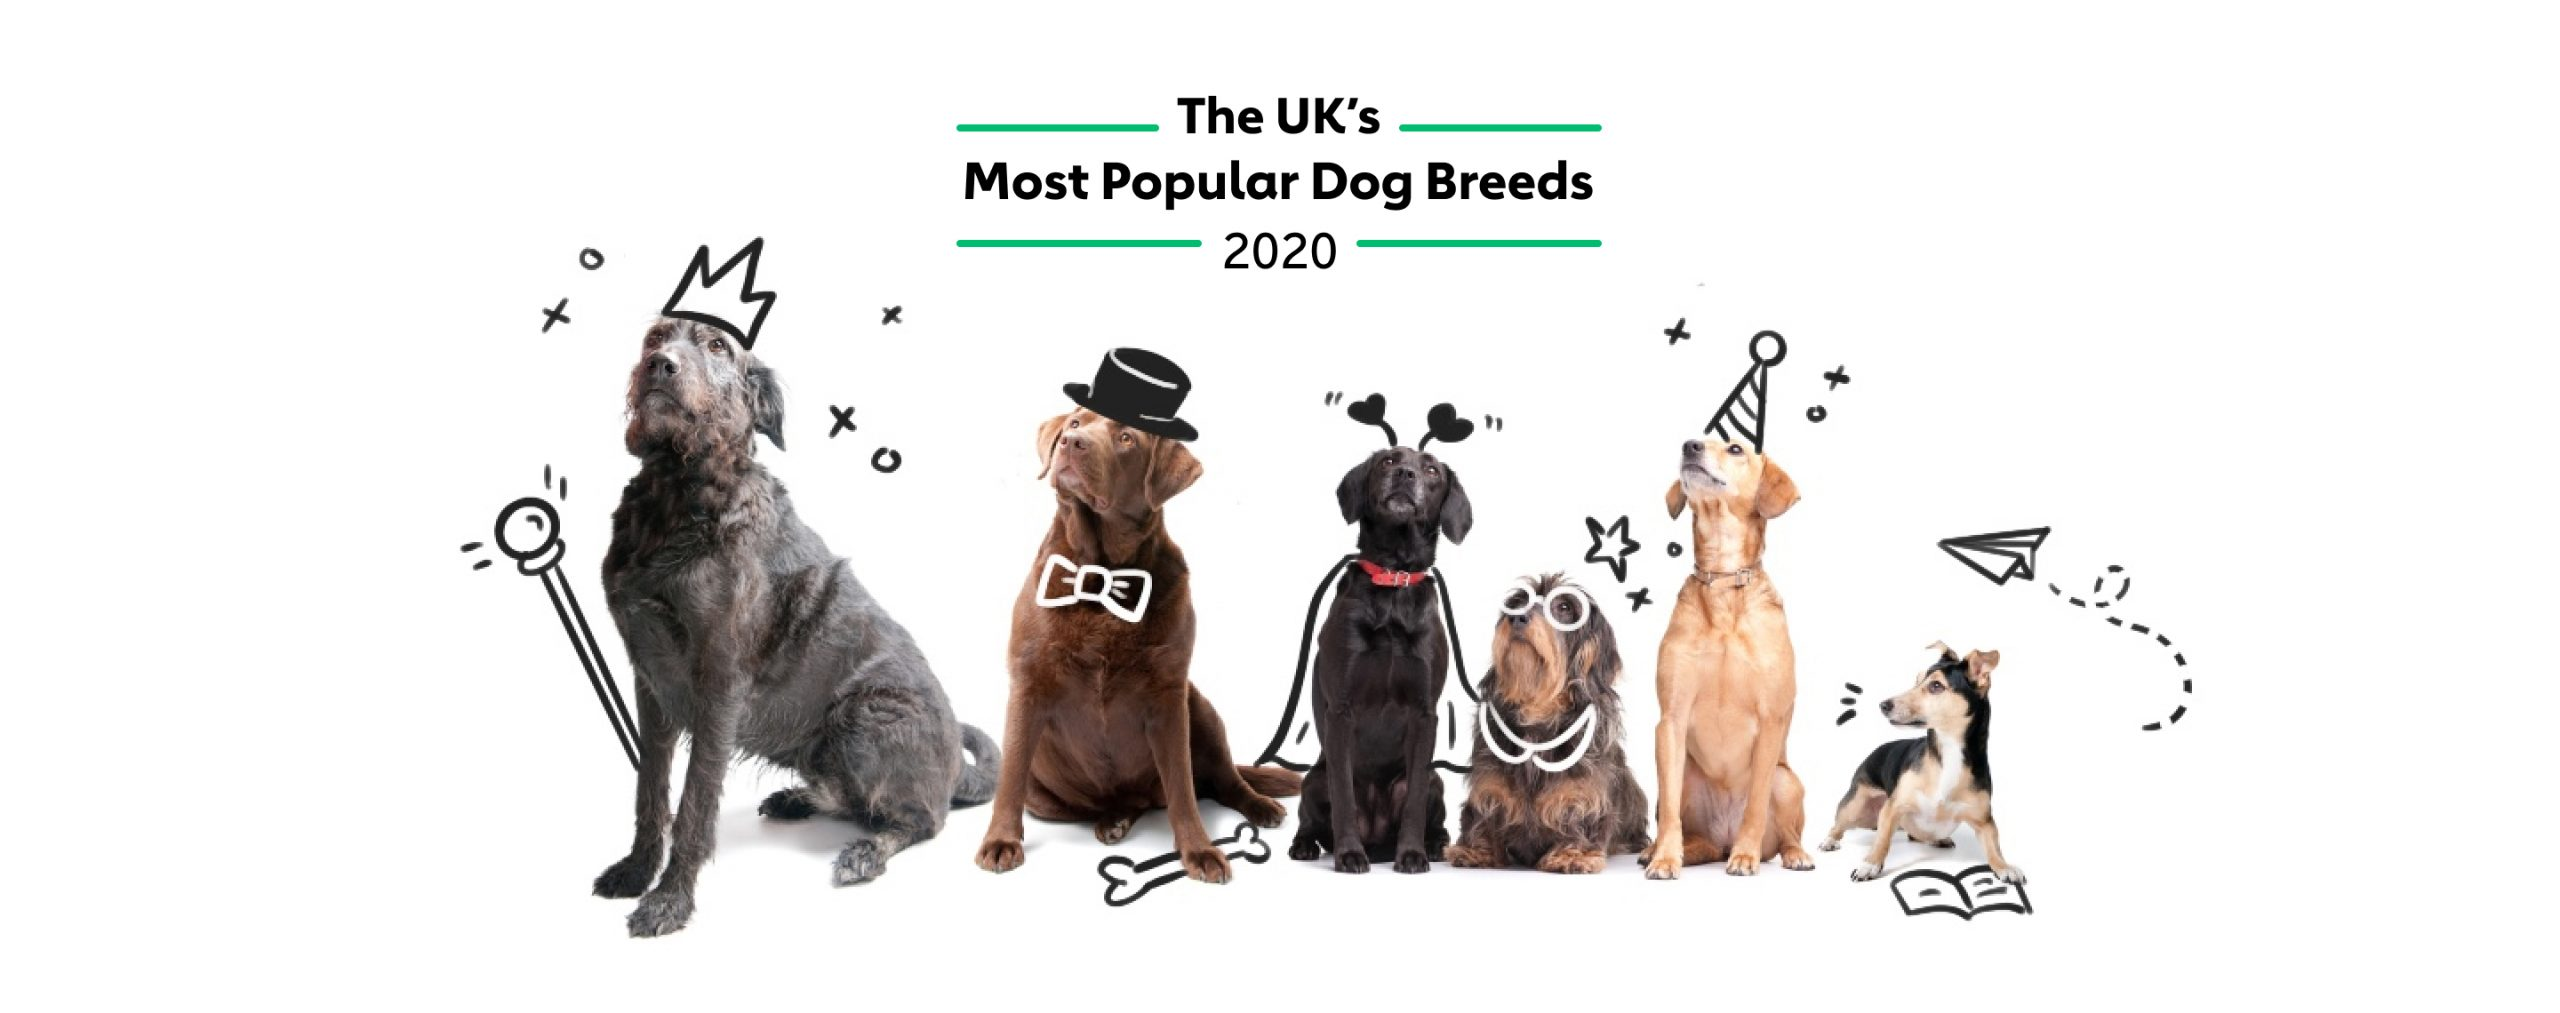 Most Popular Dog Breeds in The UK